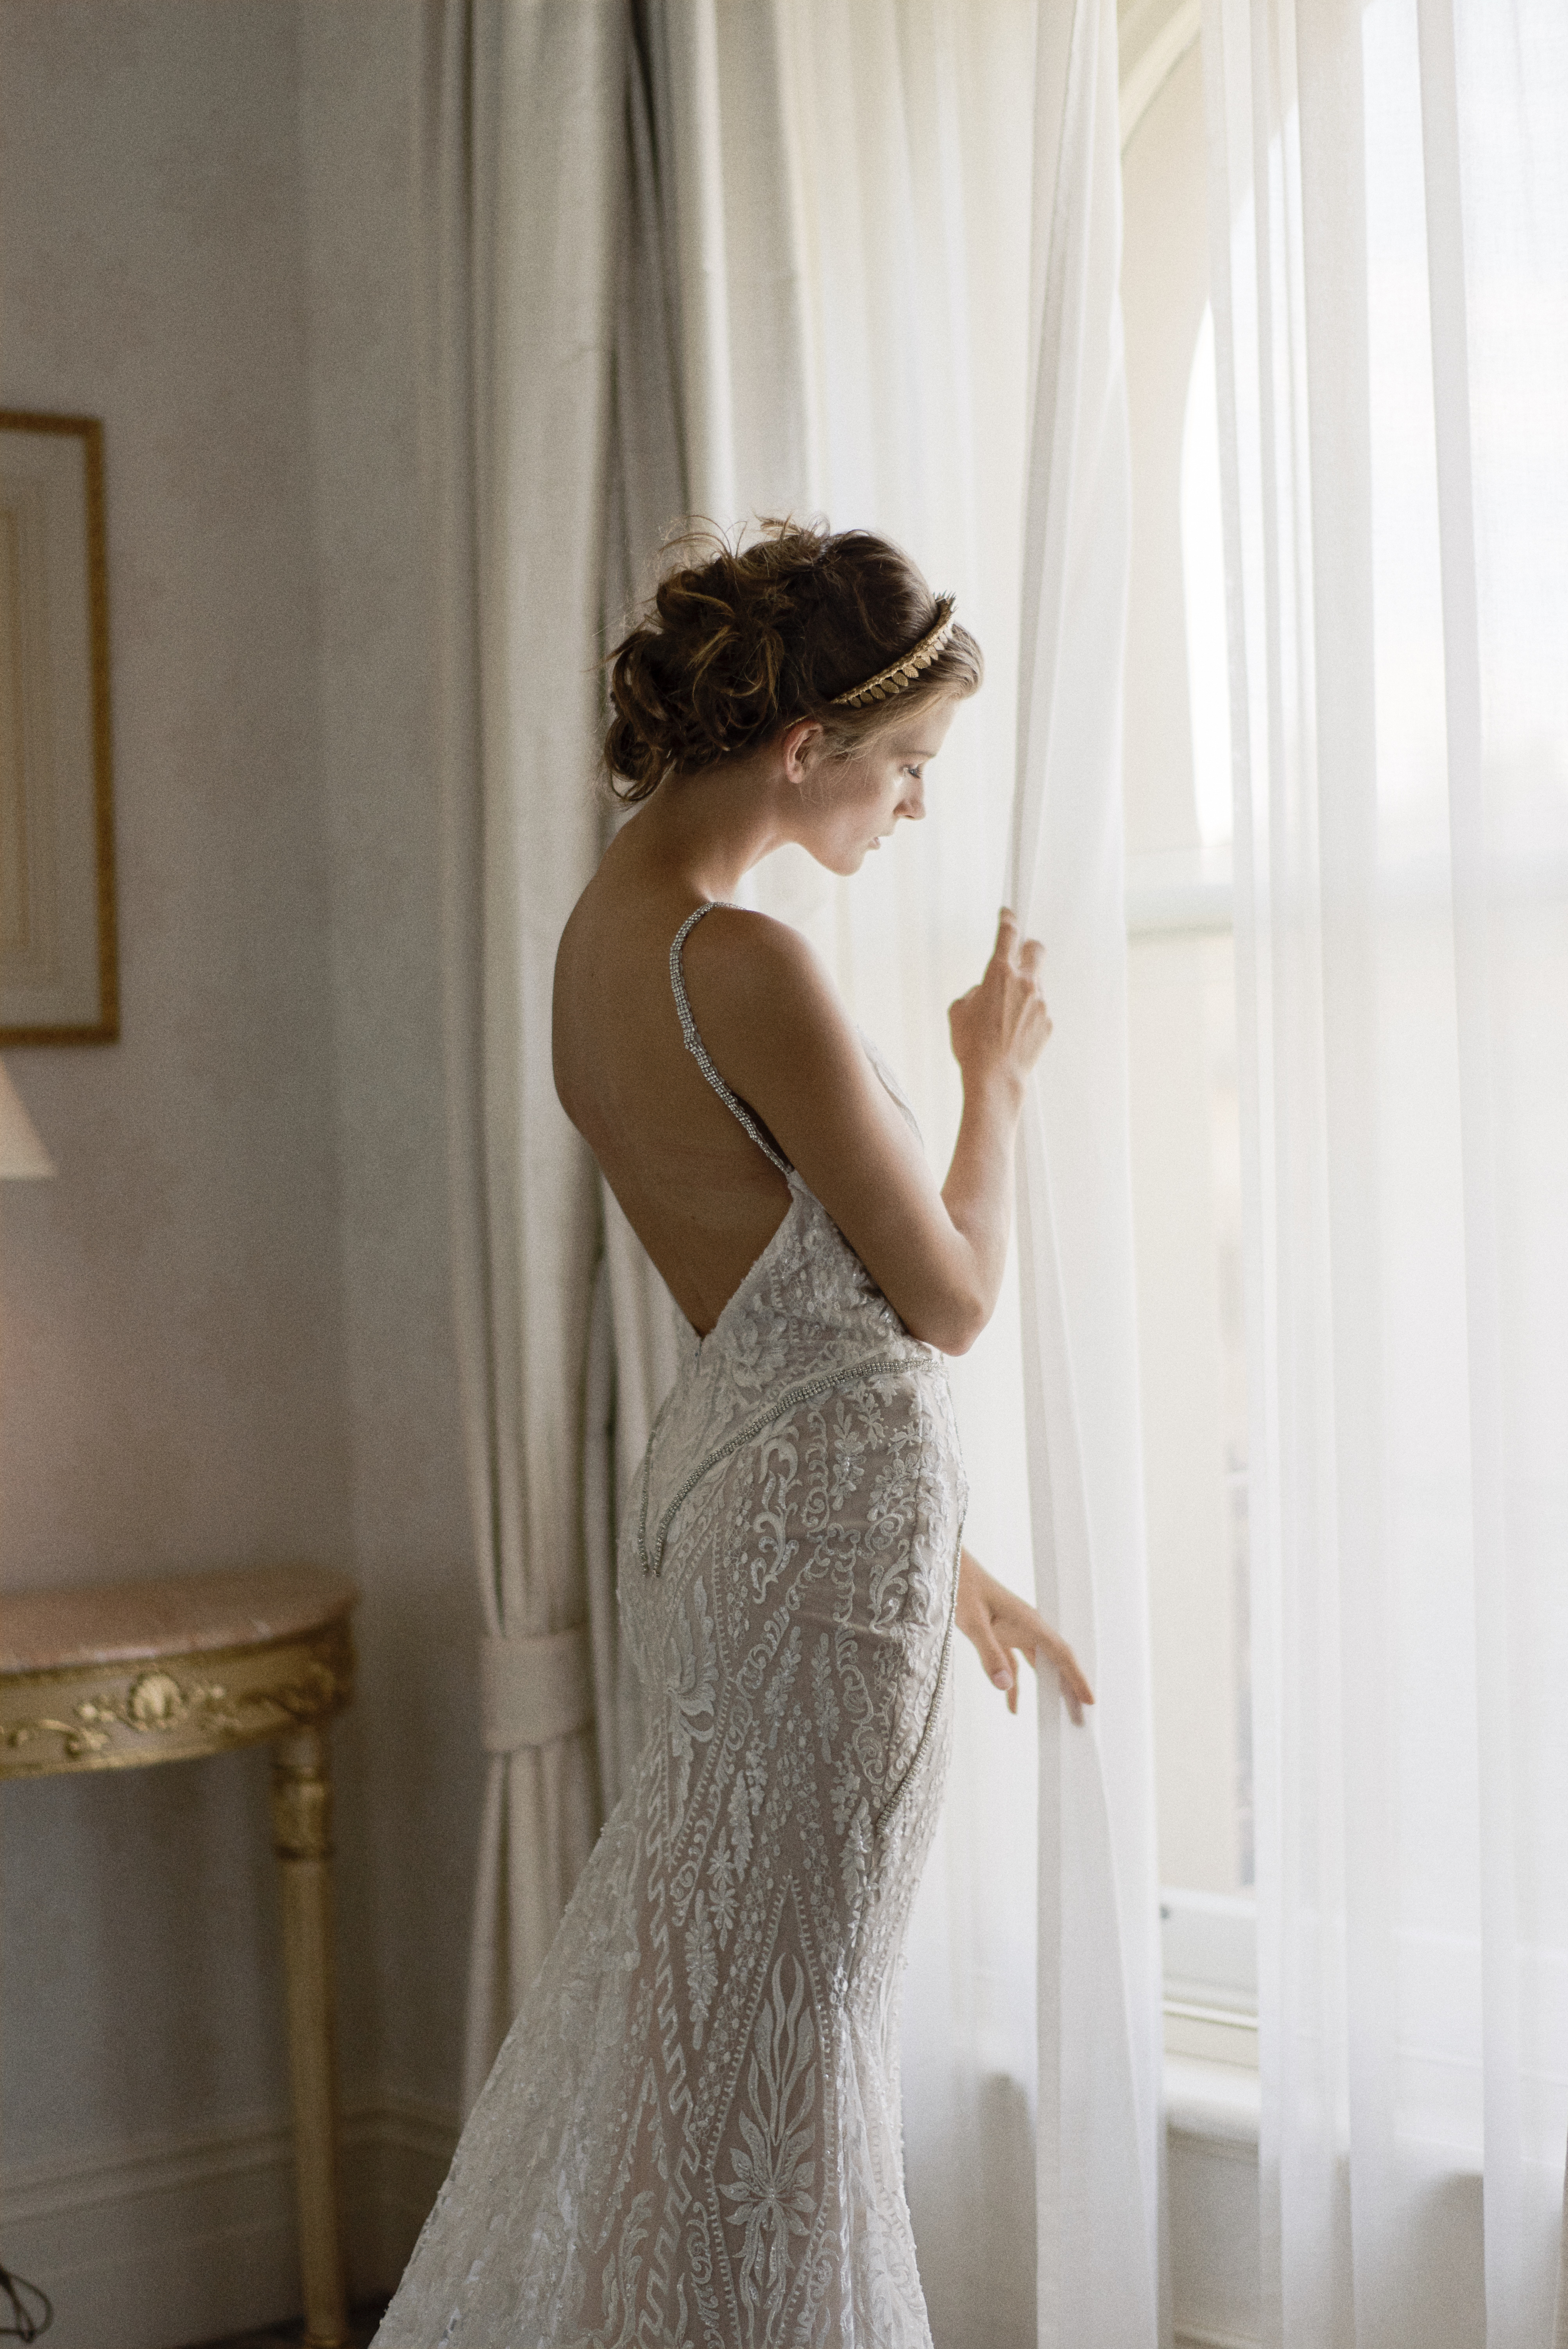 Pre-Wedding Preparation at Windsor Hotel with Uber Chic Bridal Gowns and Regal Accessories